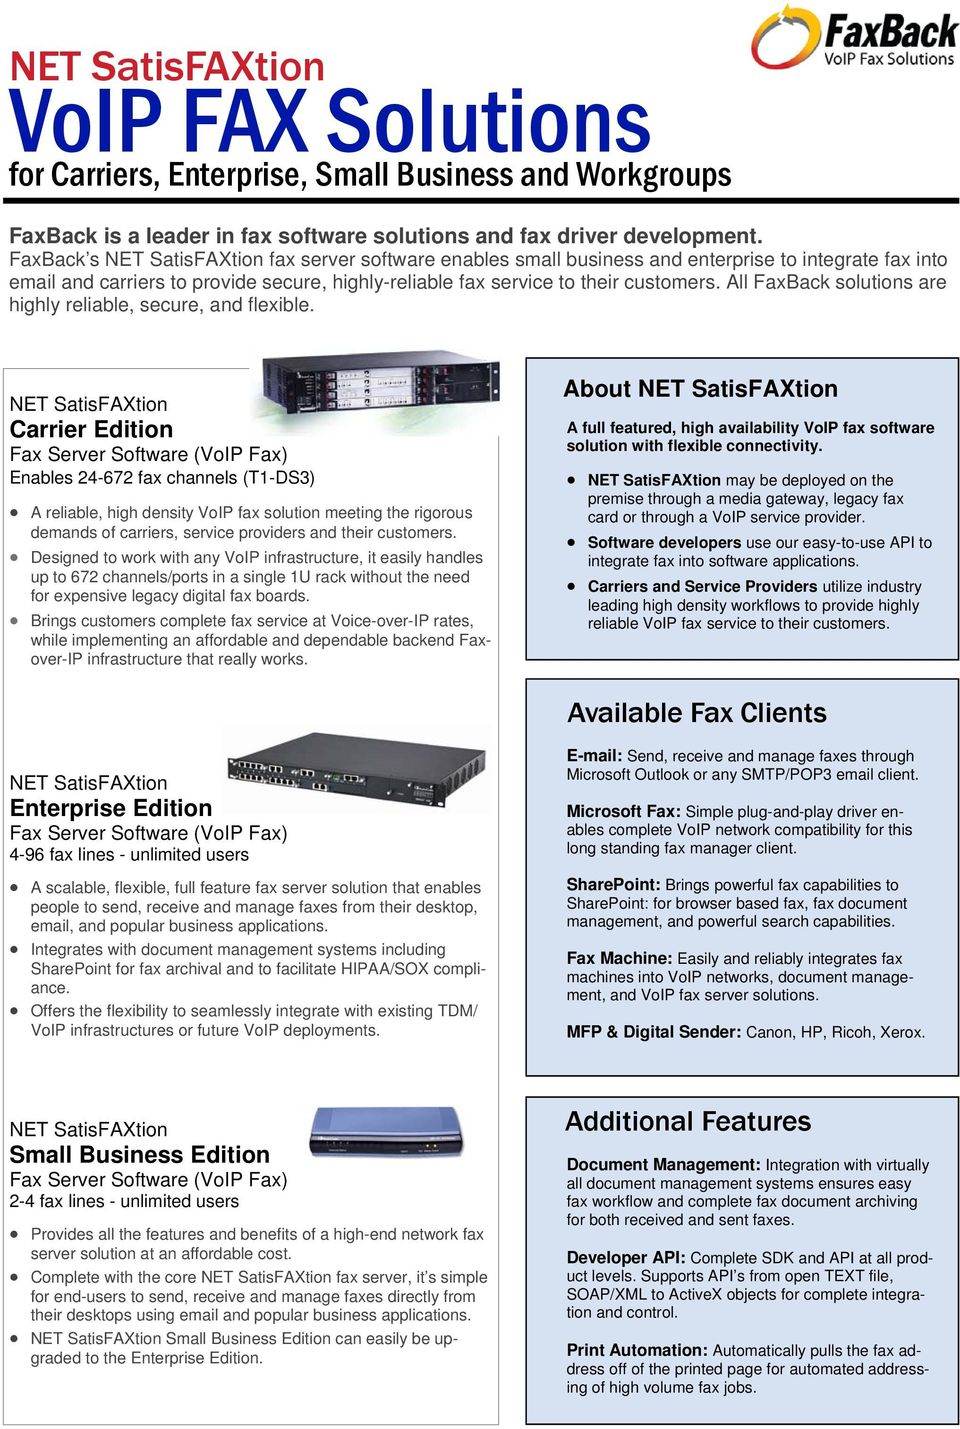 VoIP FAX Solutions  for Carriers, Enterprise, Small Business